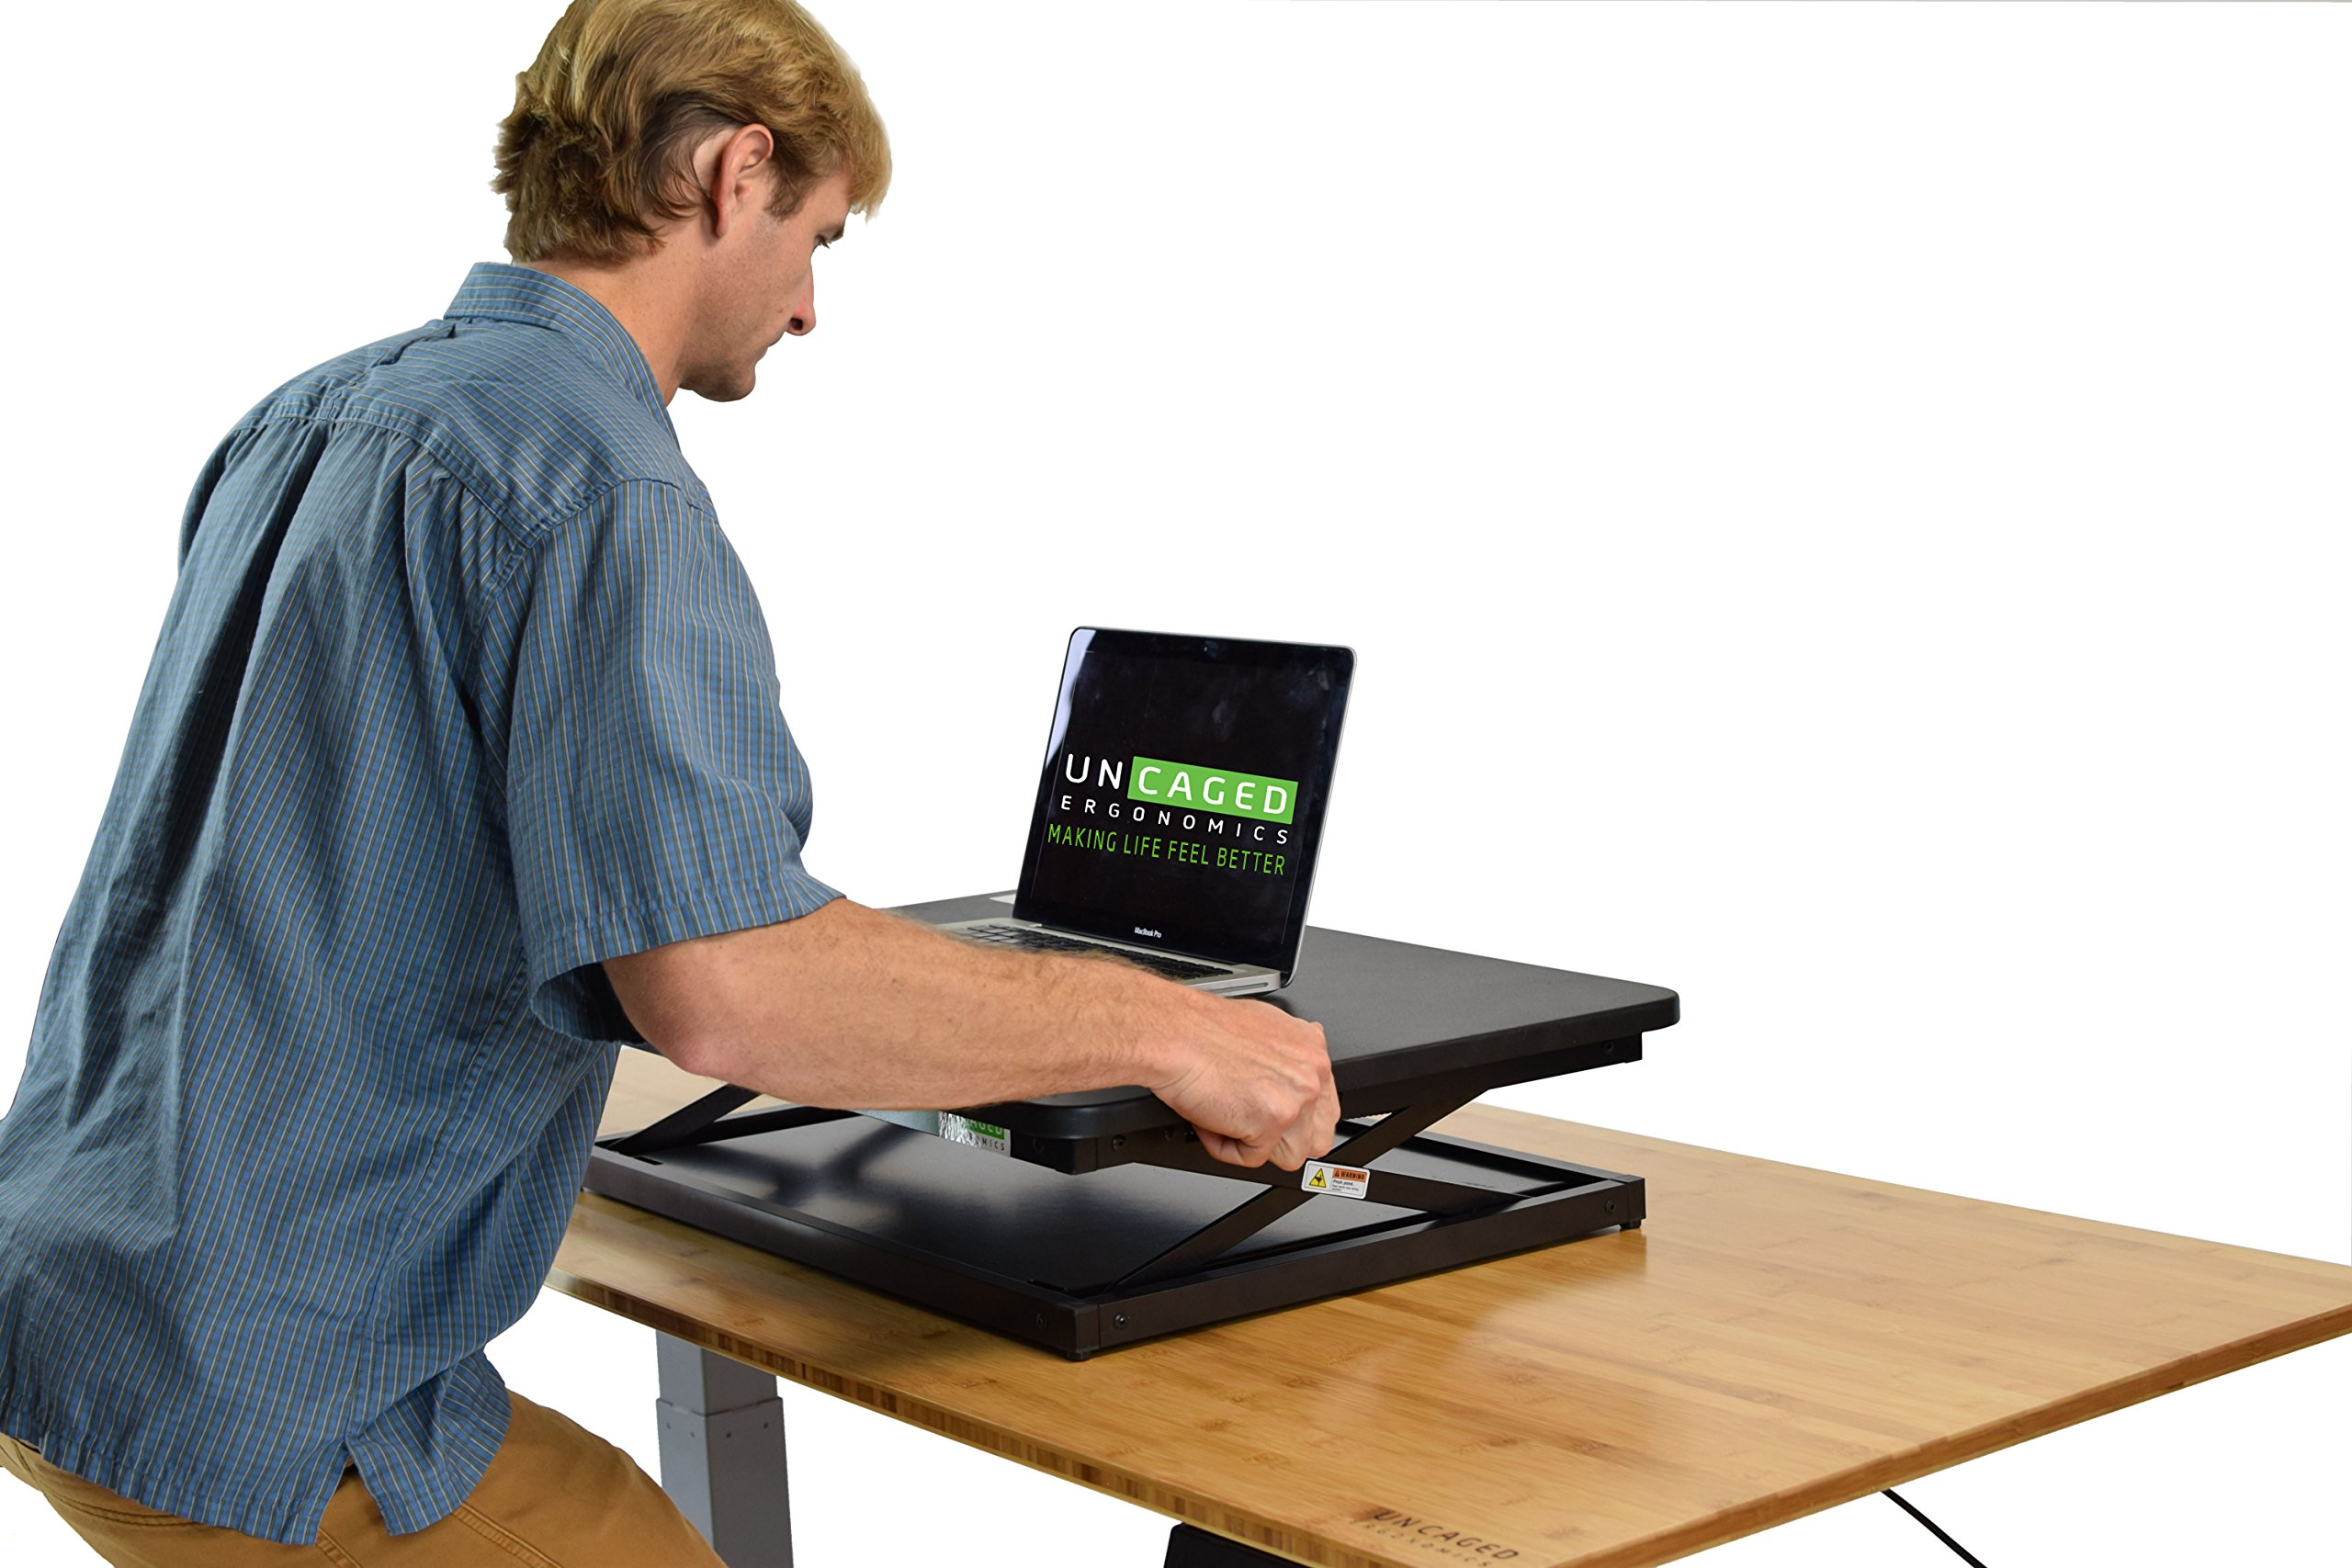 CHANGEdesk Mini Small Adjustable Height Standing Desk Converter for Laptop MacBook Single Monitor Desktop Computer Portable Lightweight Ergonomic sit Stand up Corner Riser Affordable Compact Tabletop by Uncaged Ergonomics (Image #6)